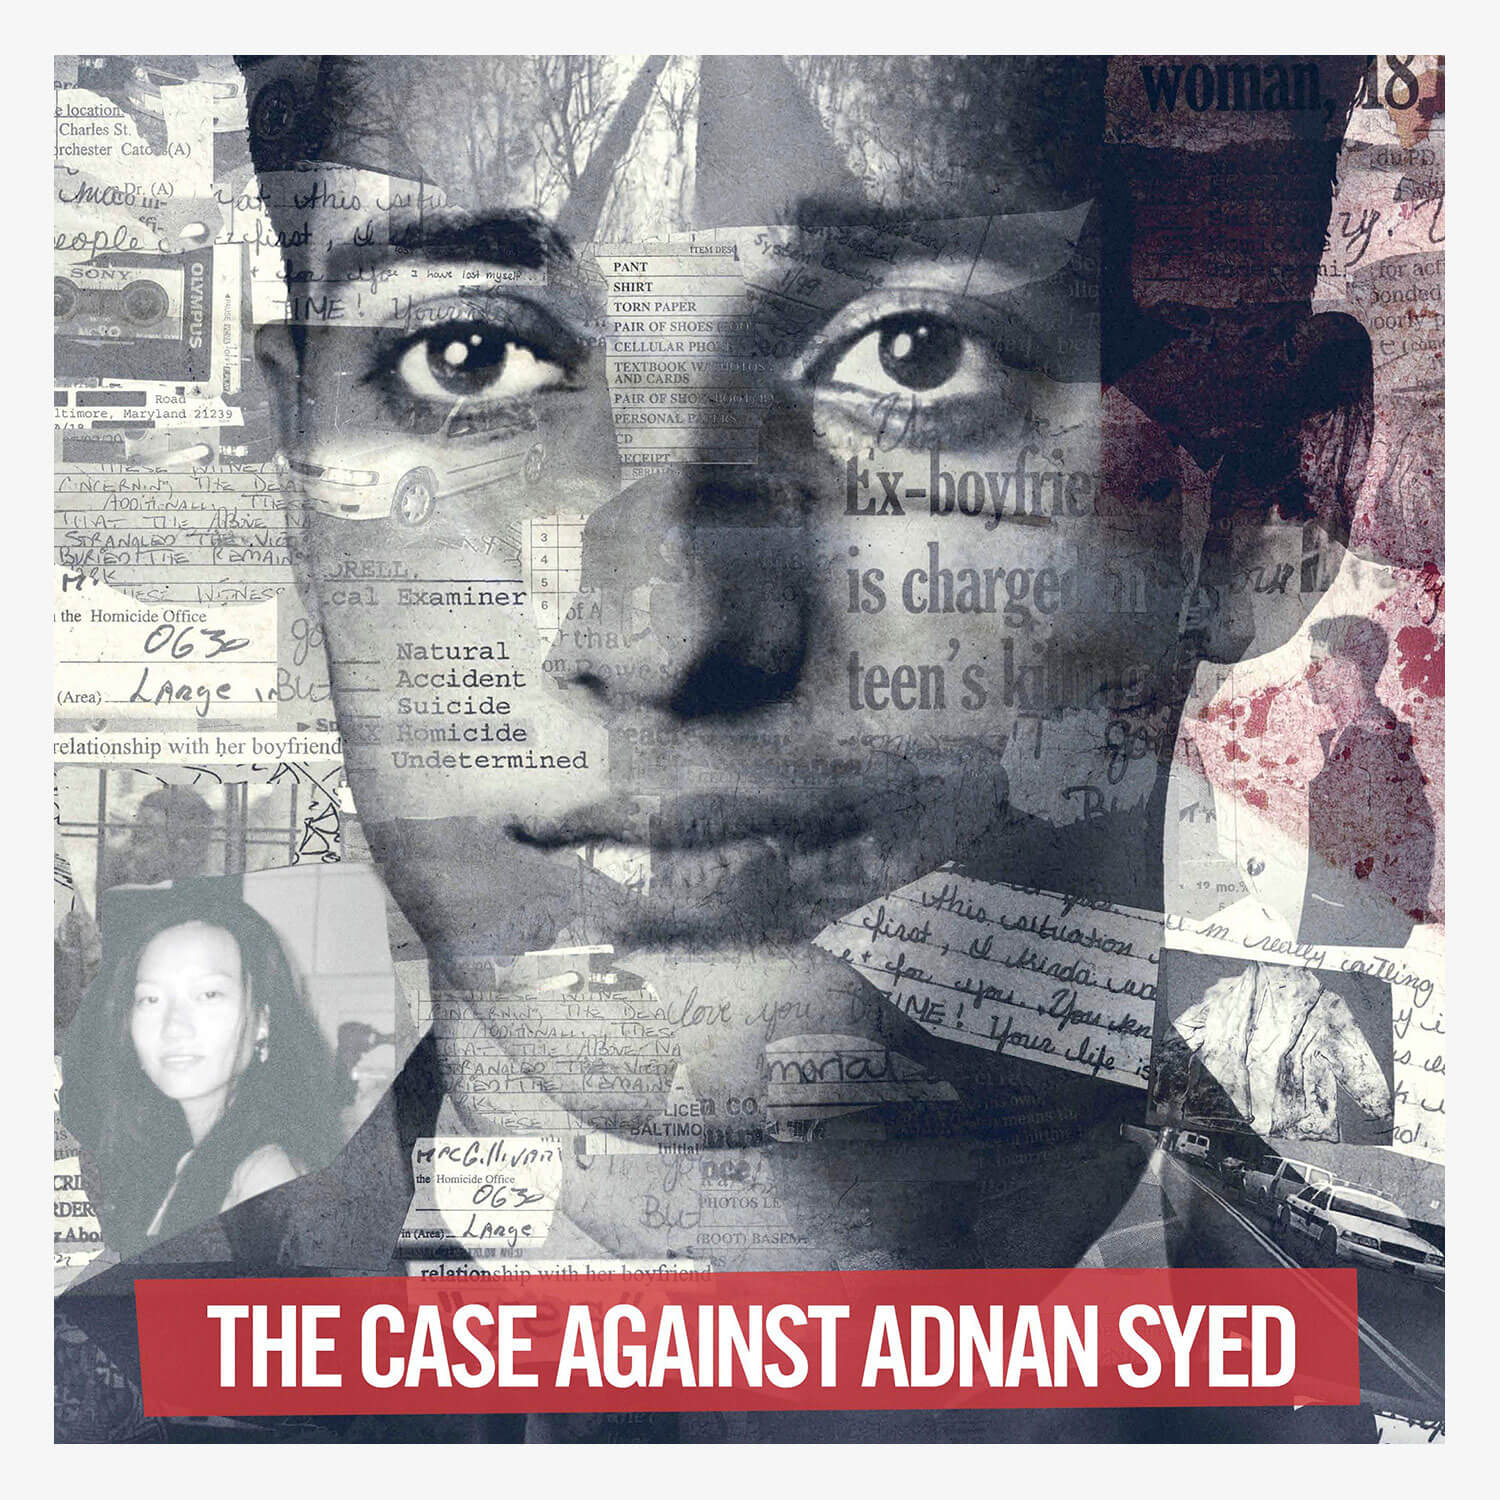 The-Case-Against-Adnan-Syed.jpg